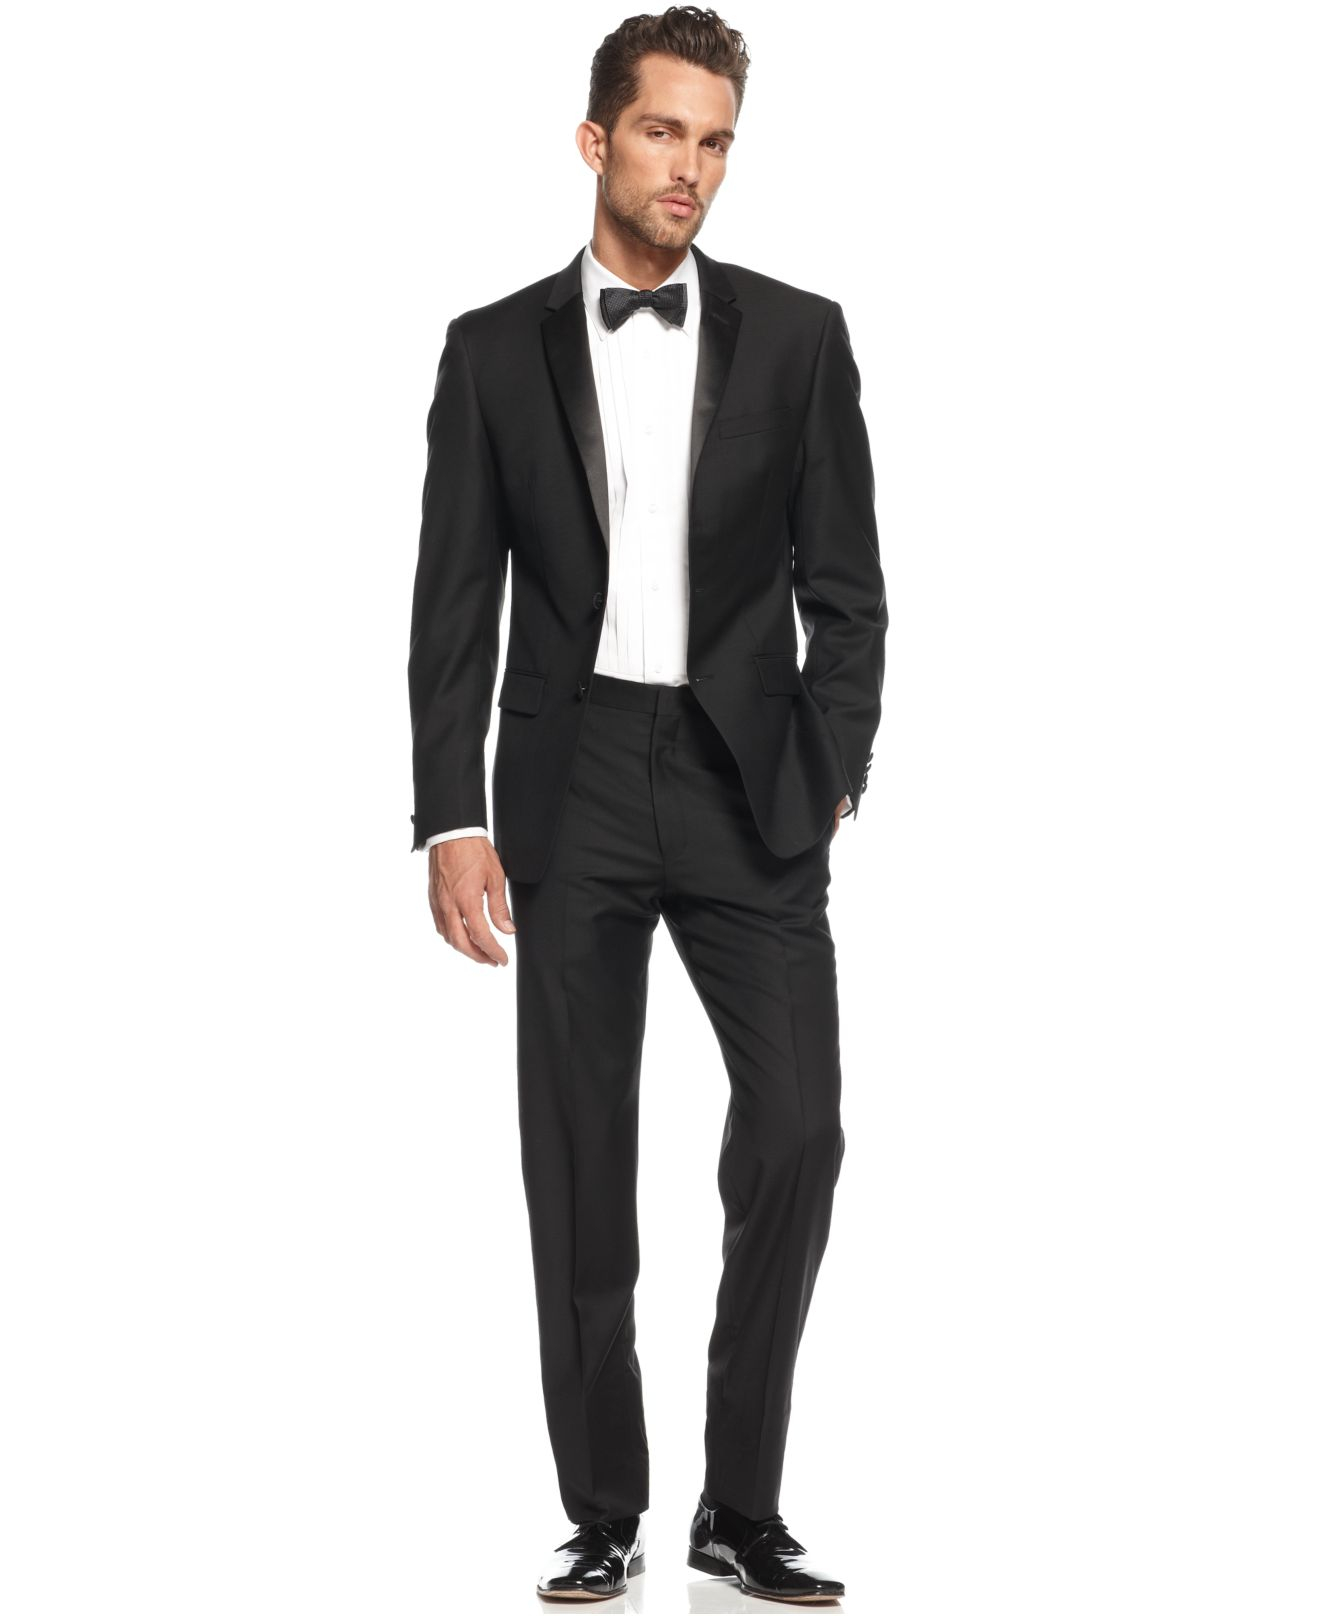 dkny extra slim fit black tuxedo in black for men lyst. Black Bedroom Furniture Sets. Home Design Ideas